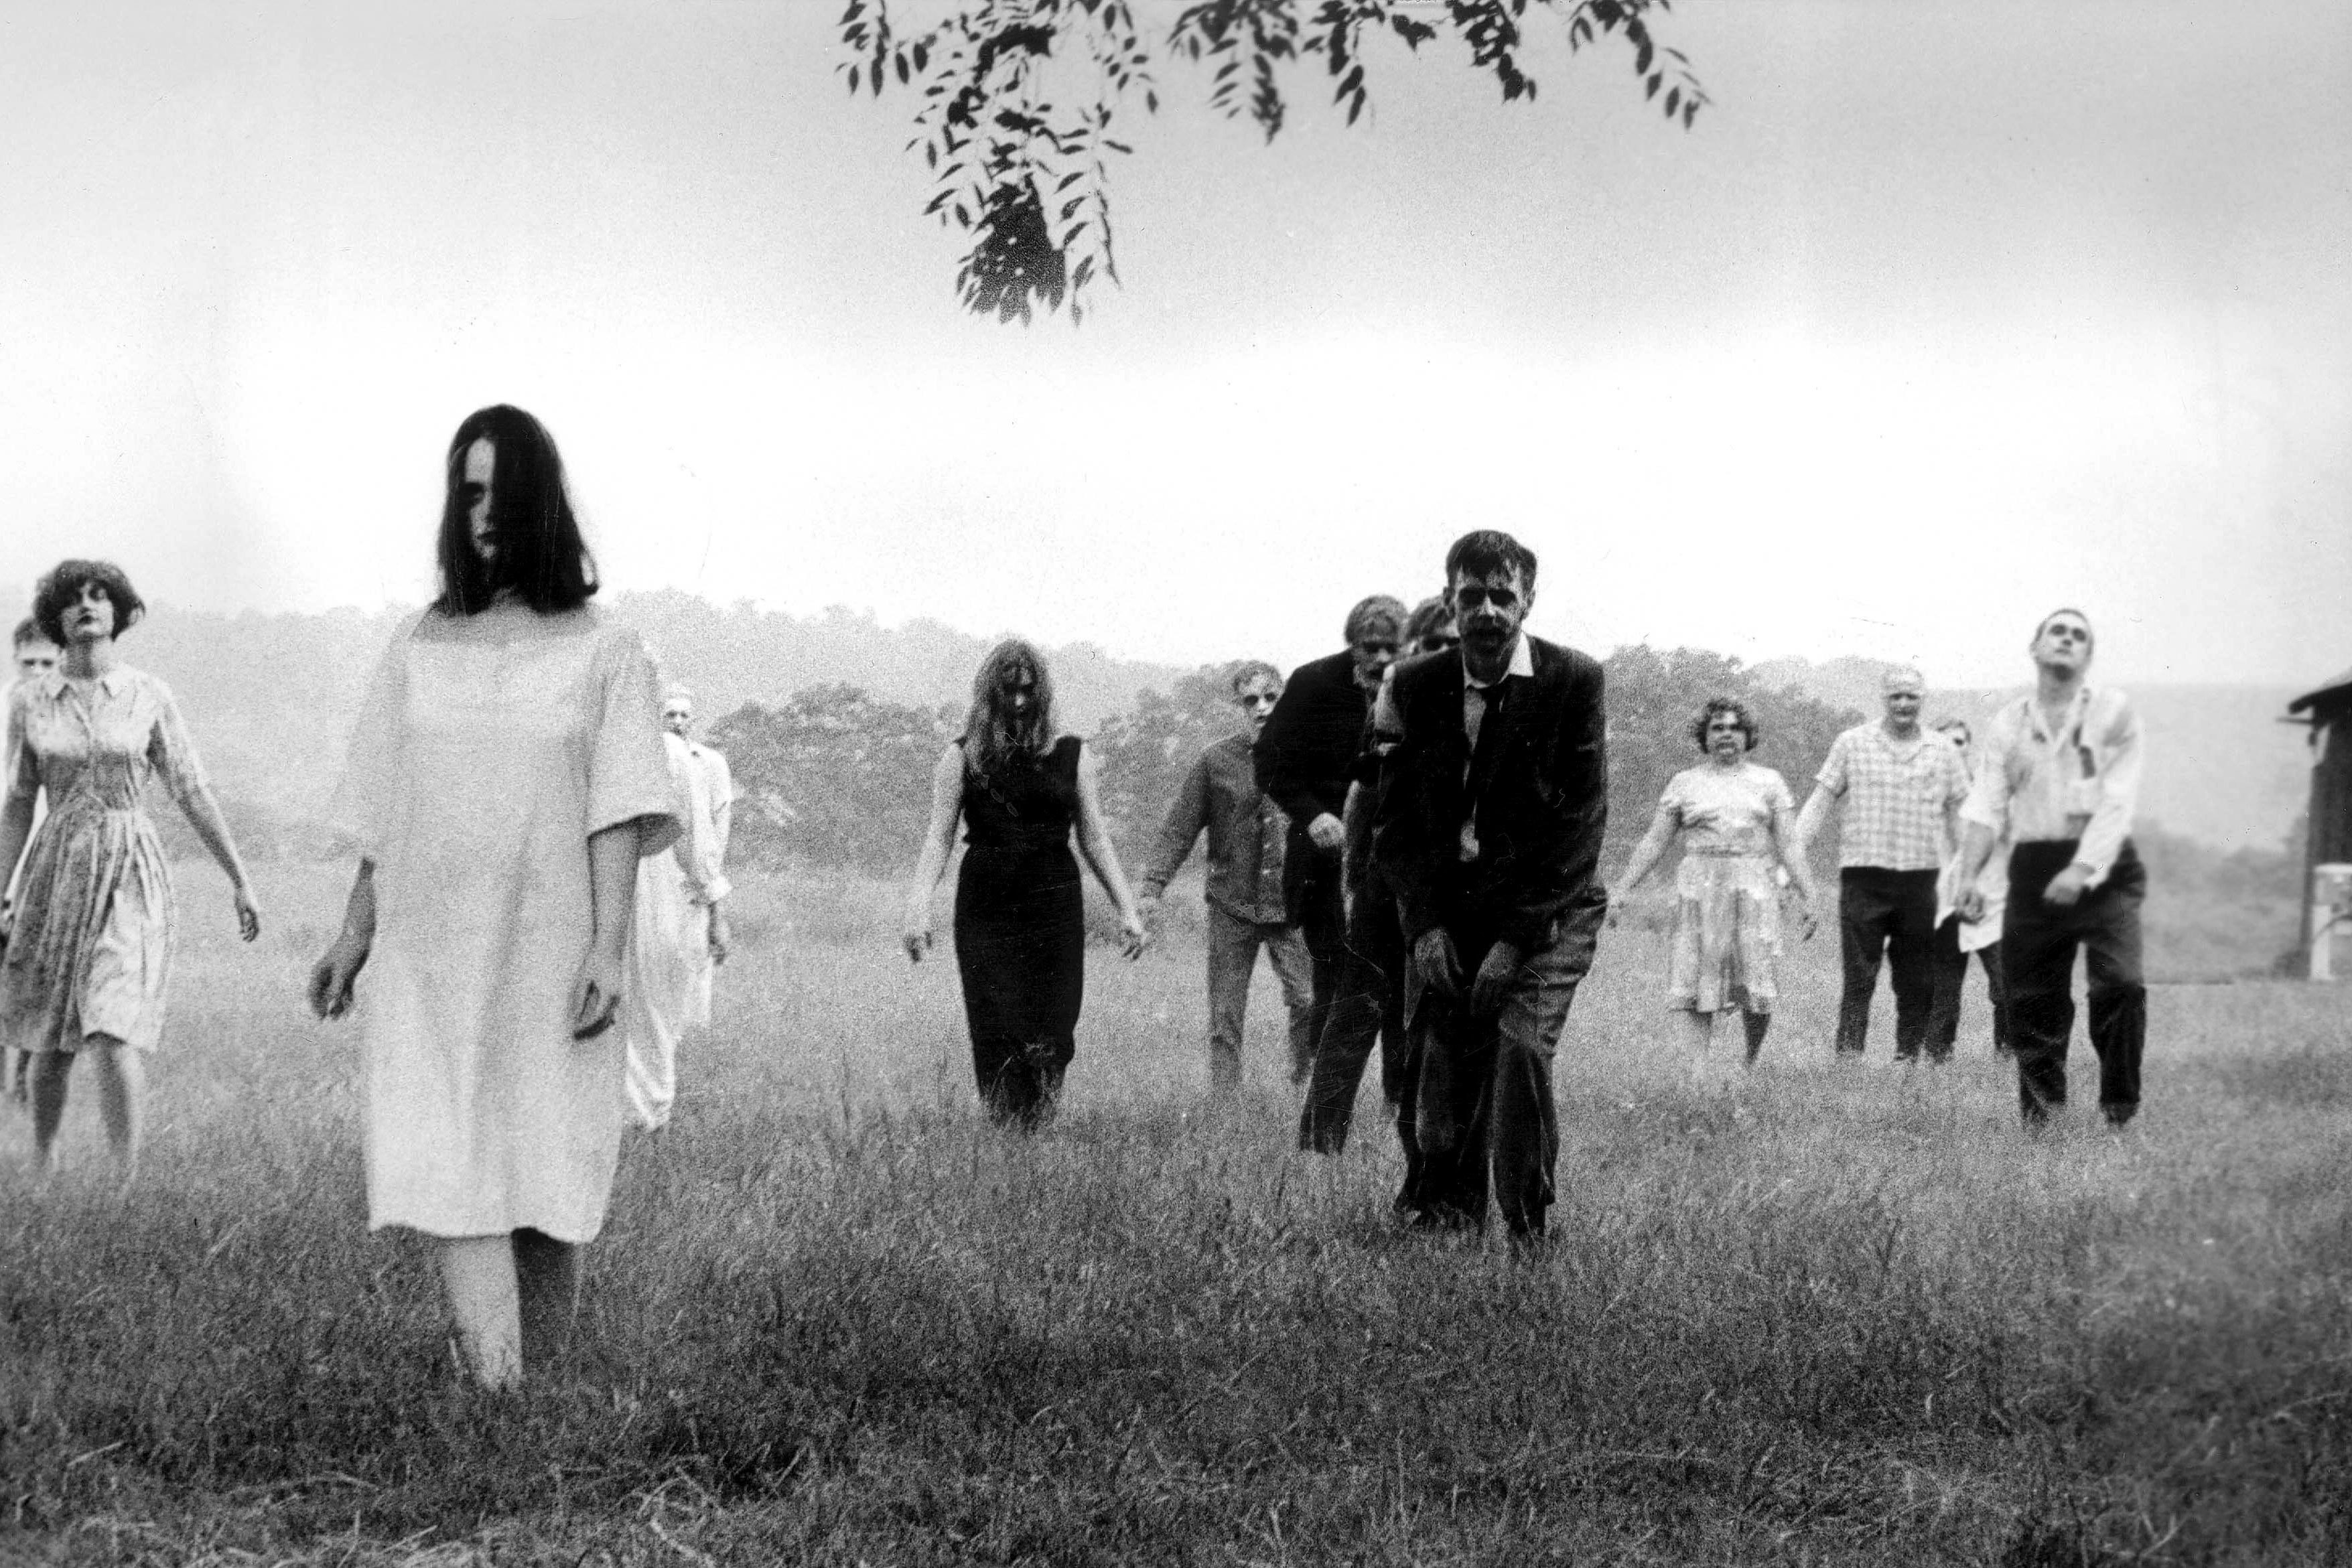 Night of the Living Dead / Dawn of the Dead Romero Zombies